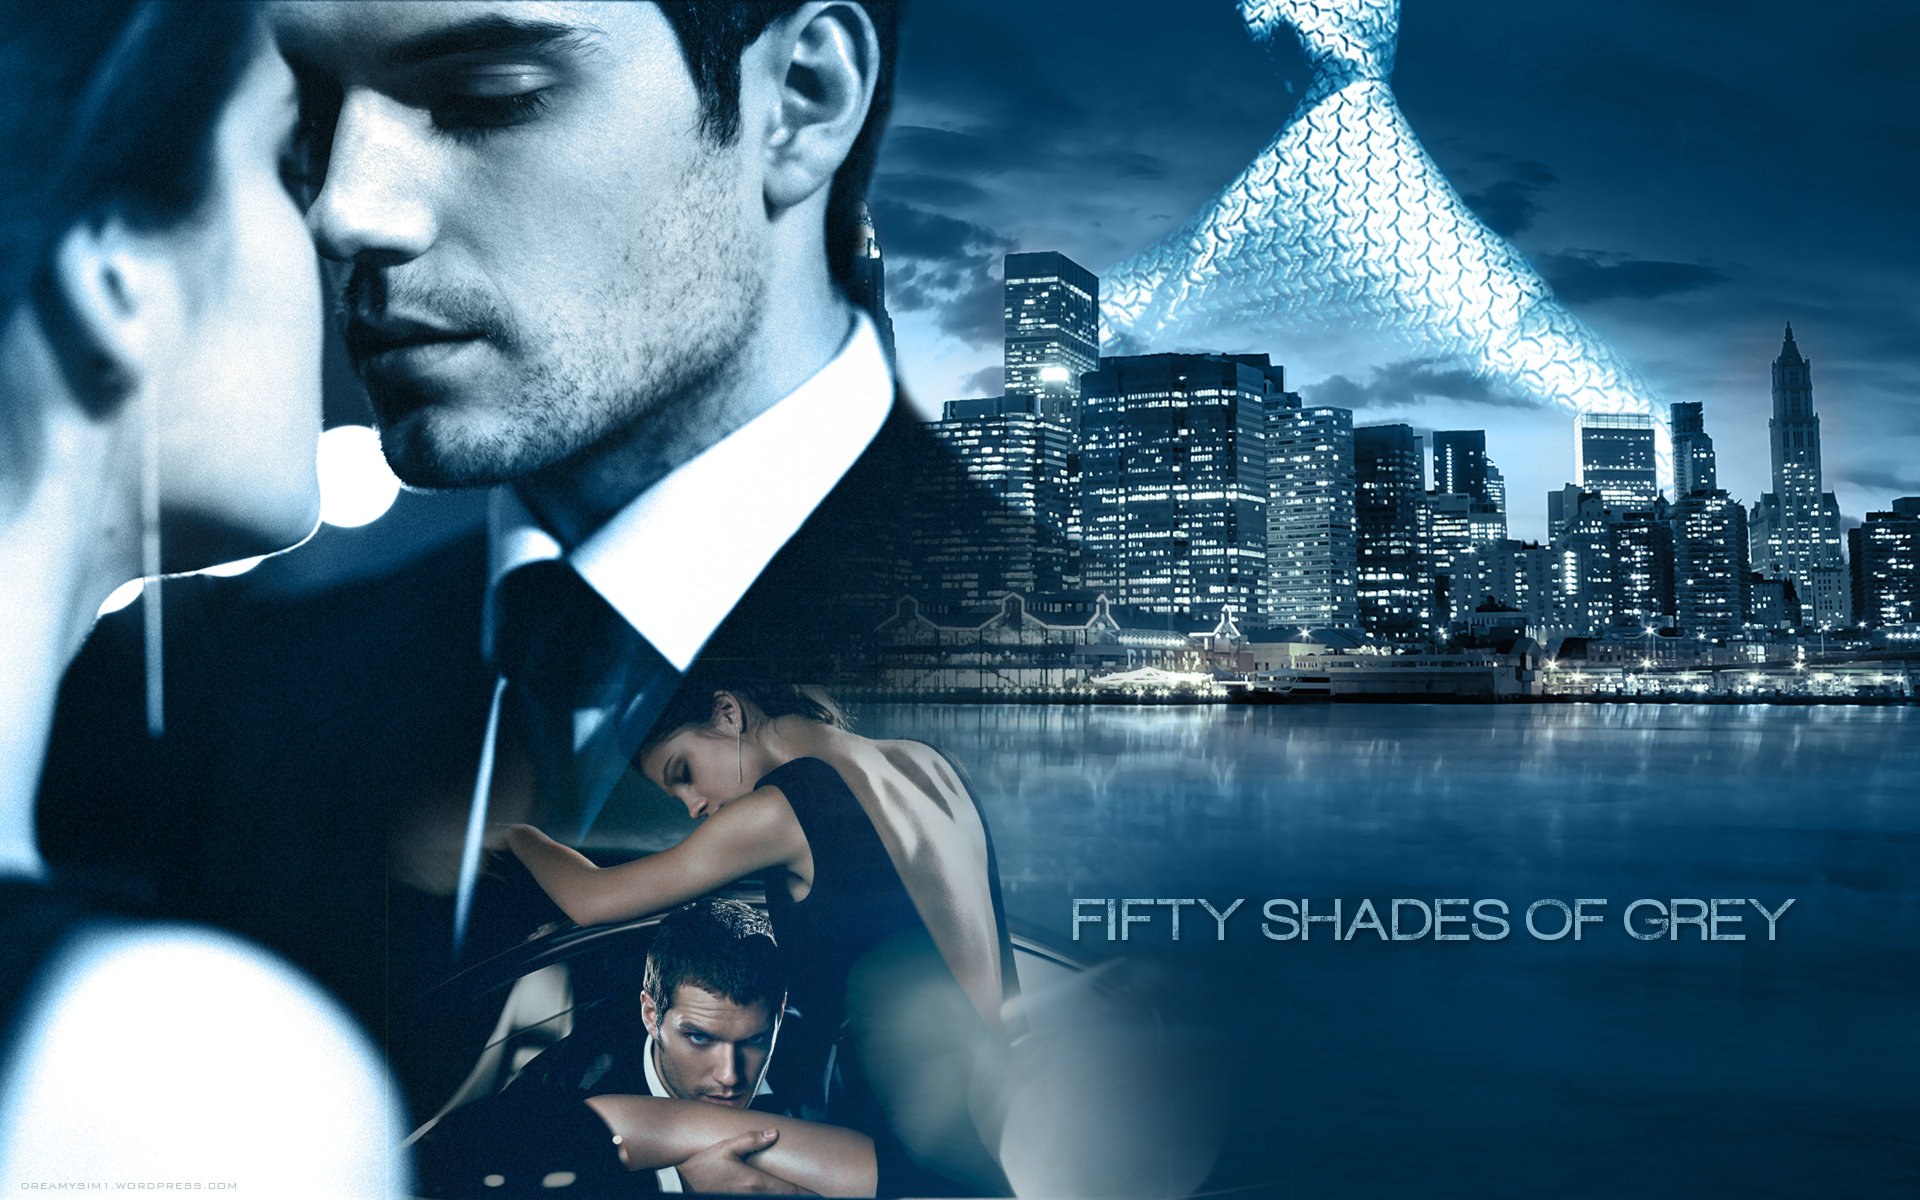 fifty shades of grey movie boring sexless and impotent 2015